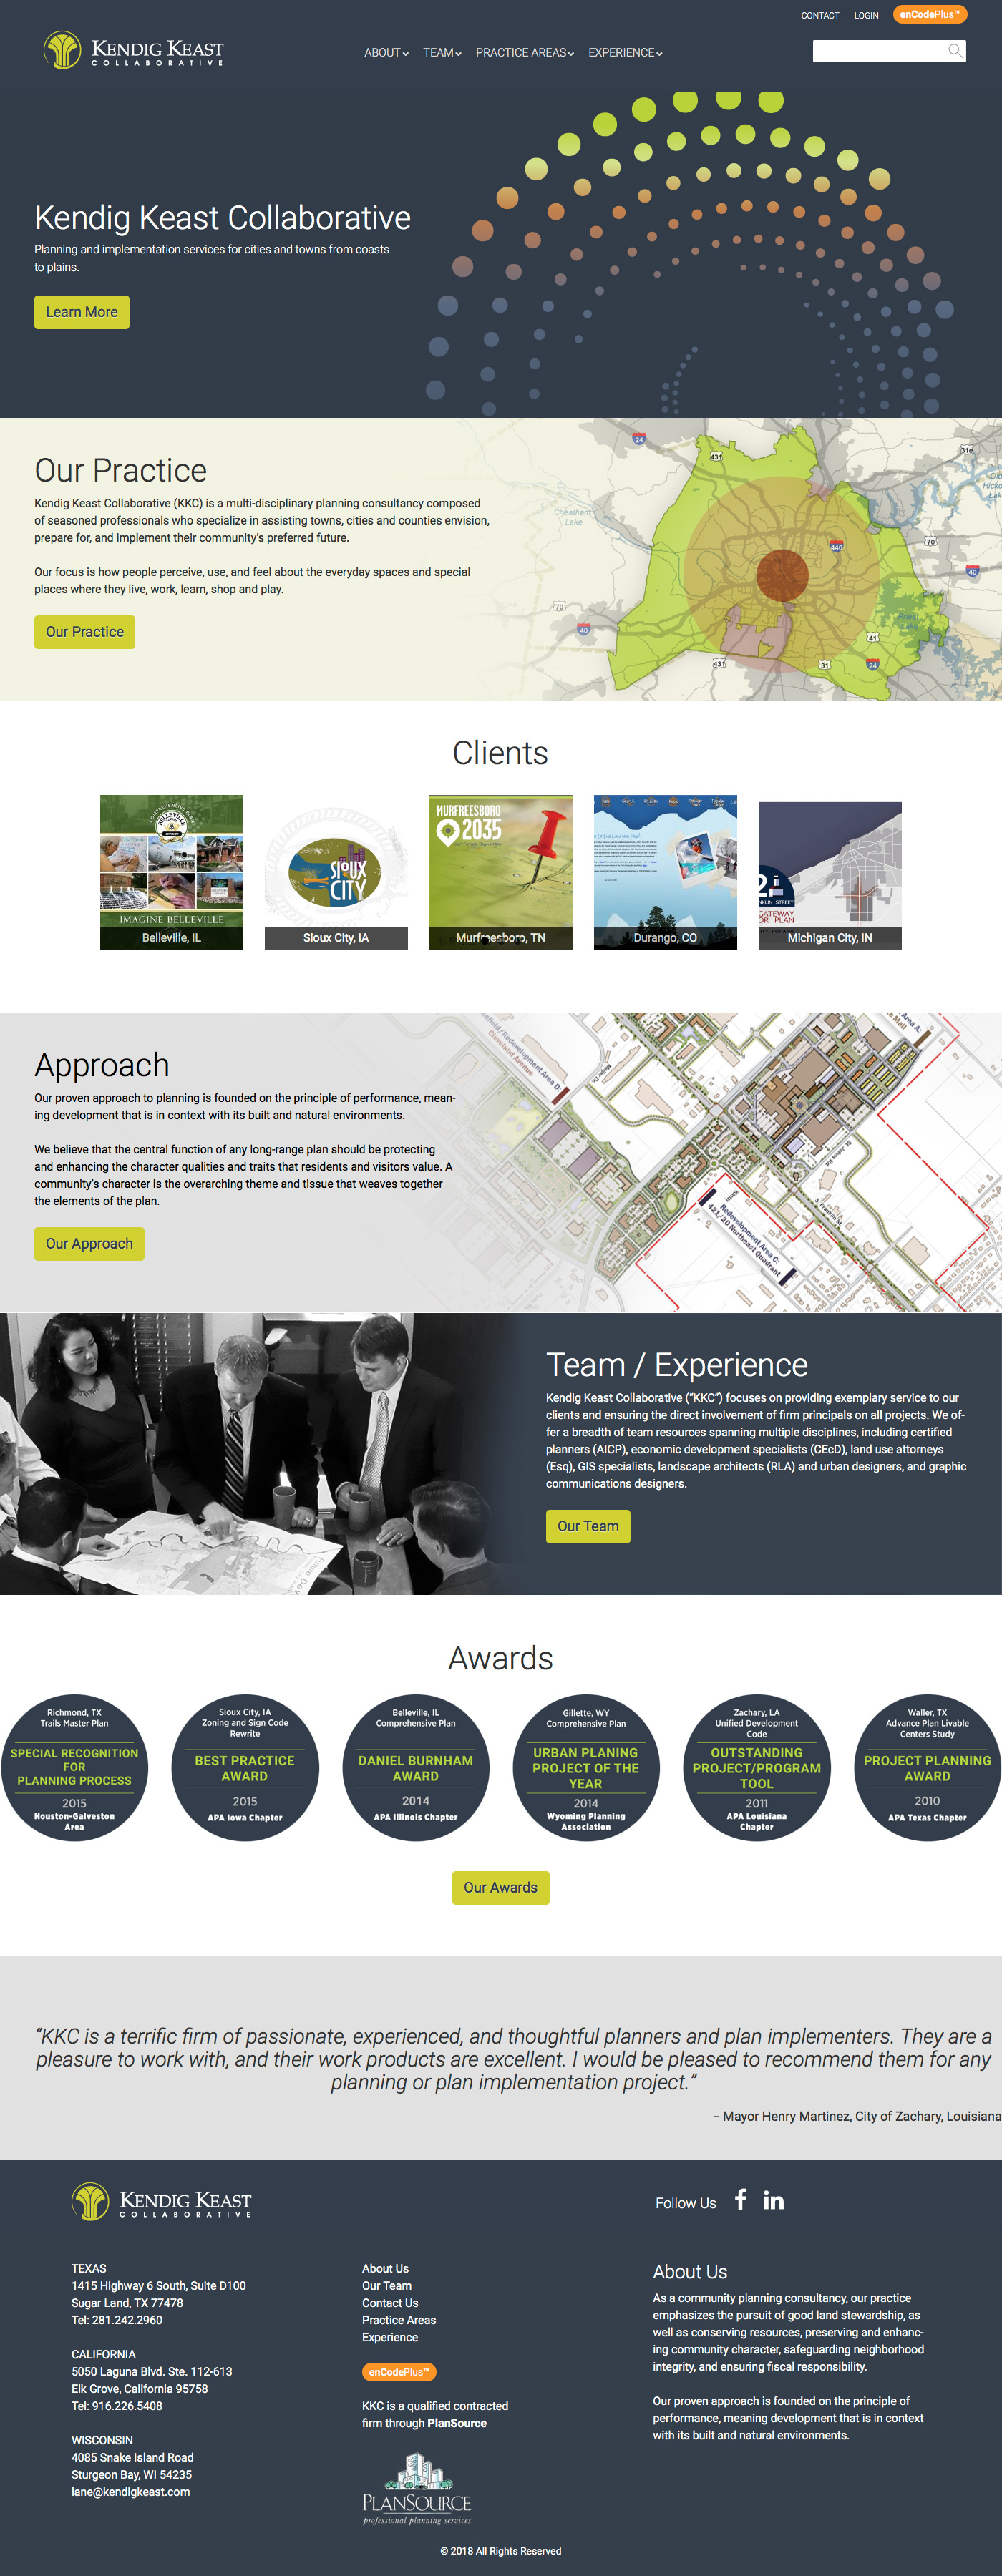 site-page-kendig-keast-collaborative